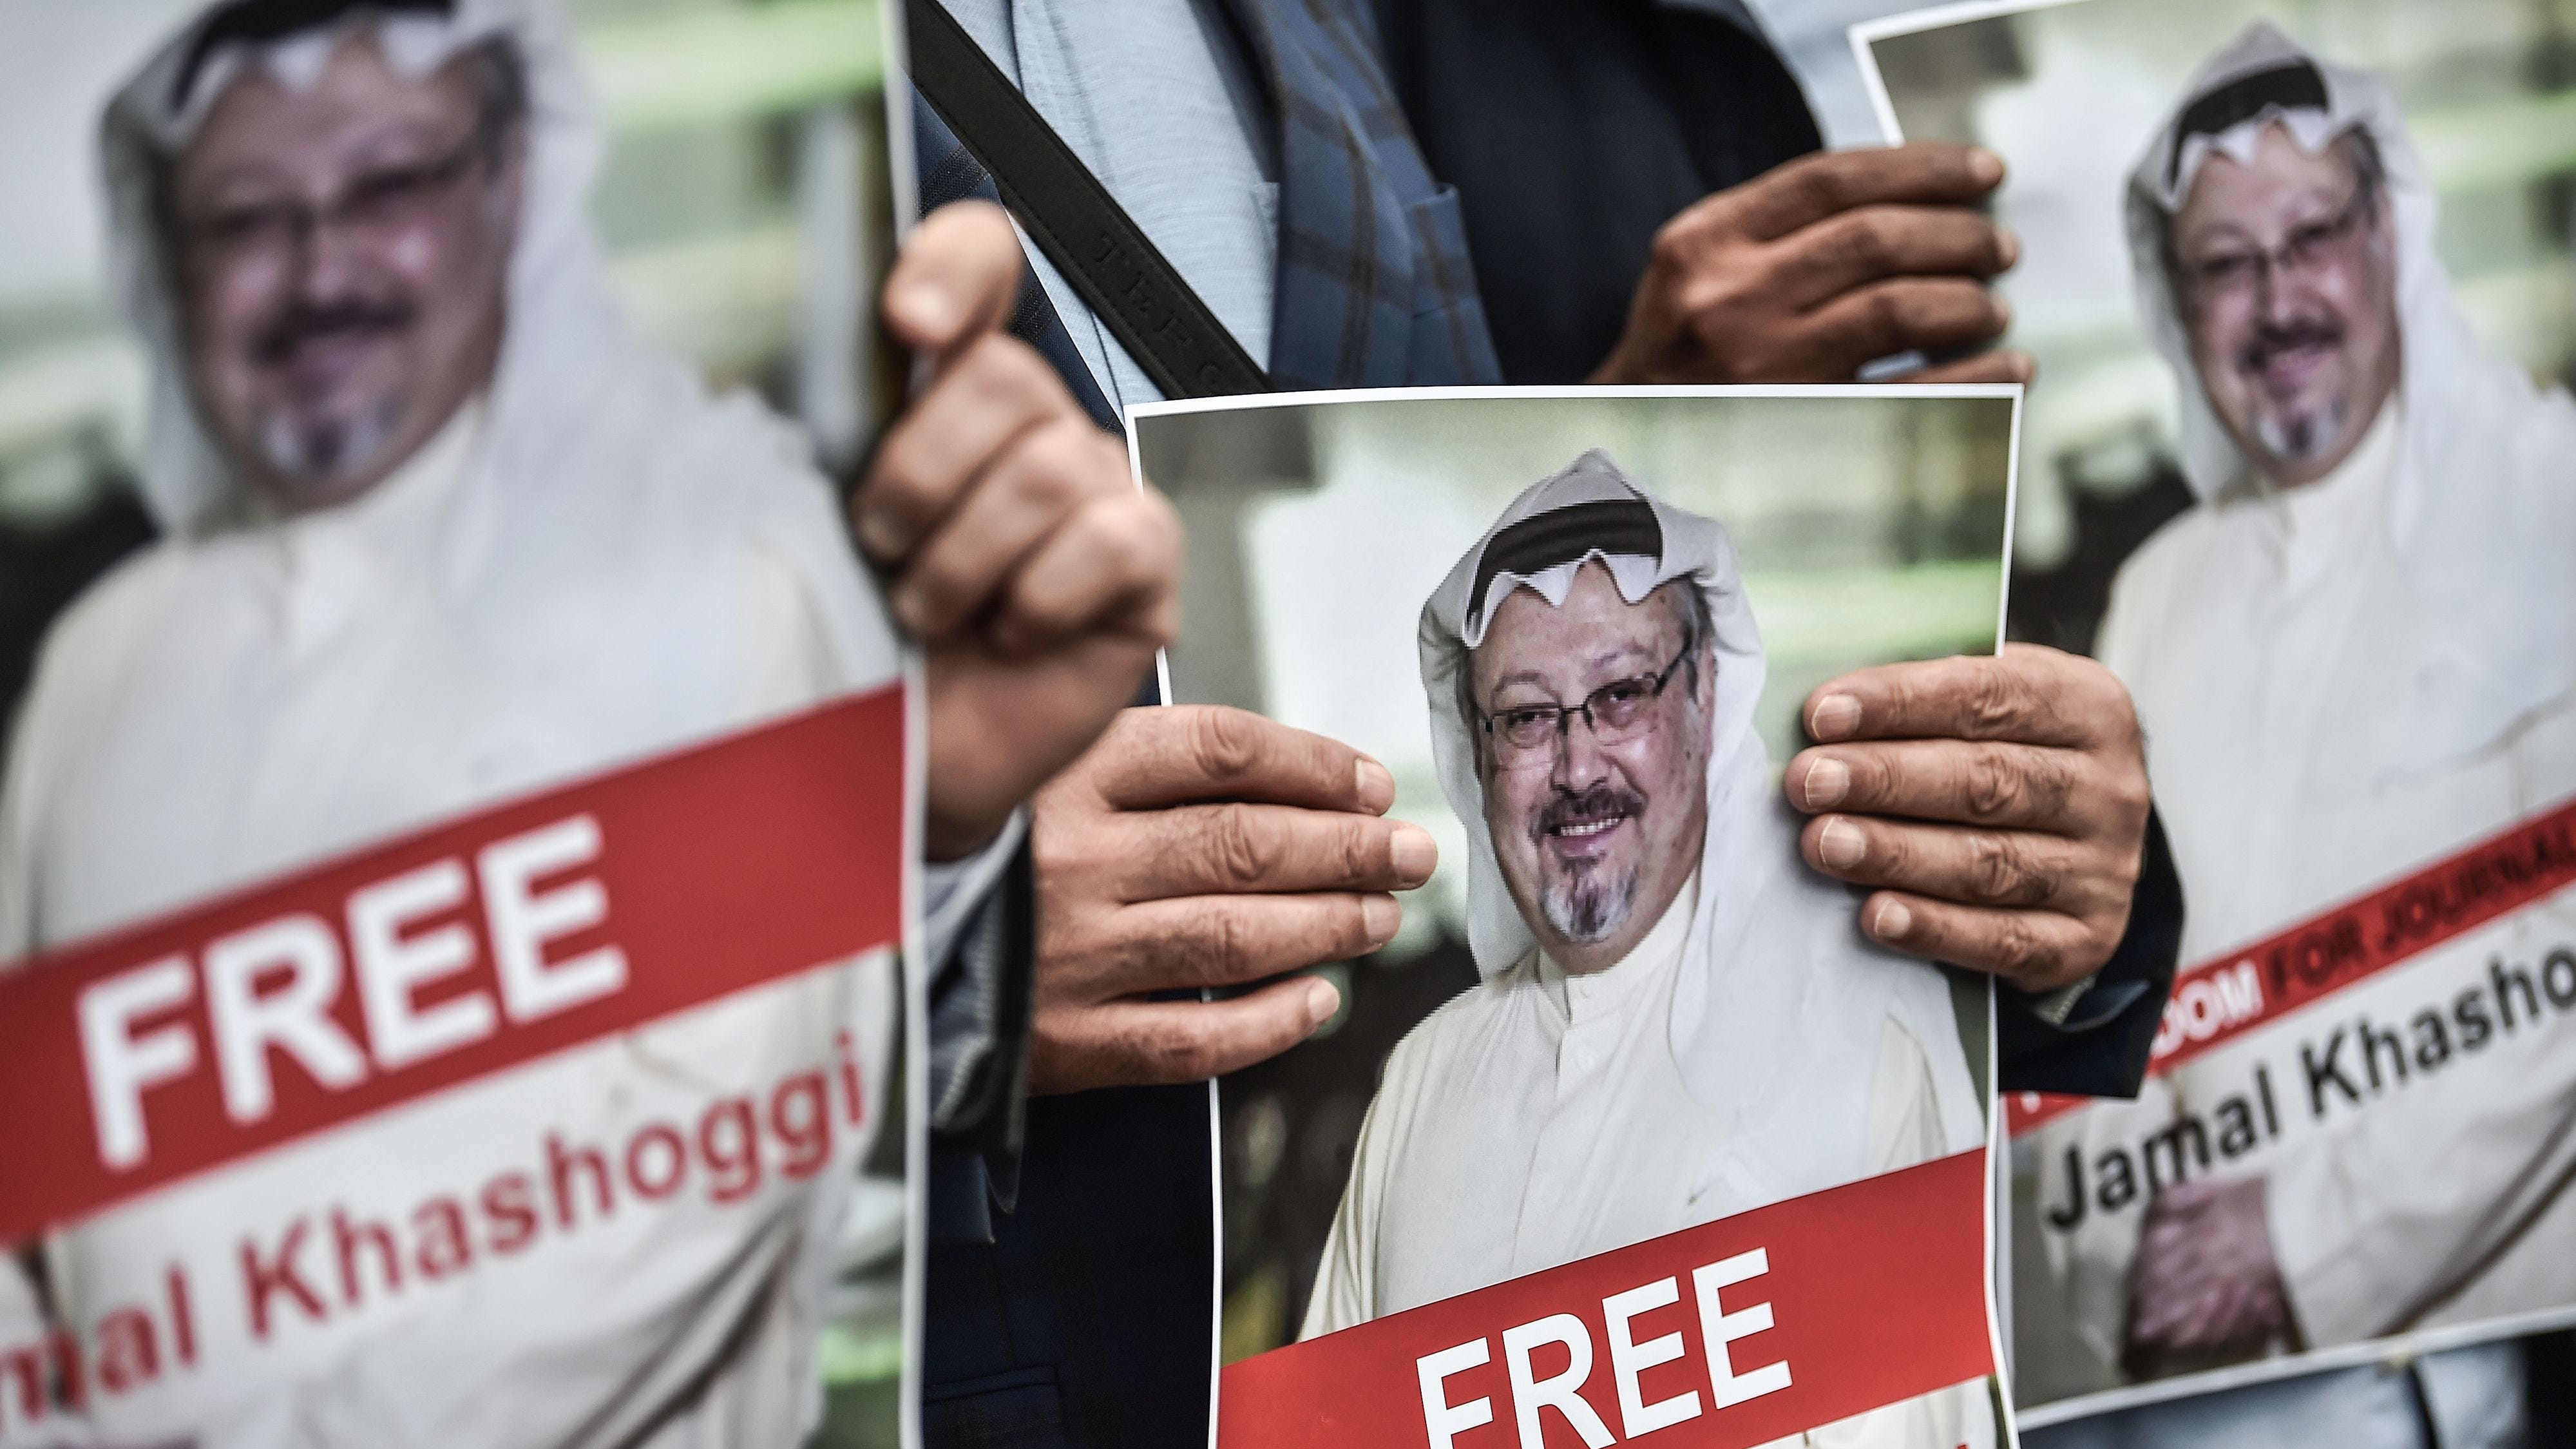 Protestors hold pictures of missing journalist Jamal Khashoggi during a demonstration in front of the Saudi Arabian consulate, Oct, 8, 2018 in Istanbul.